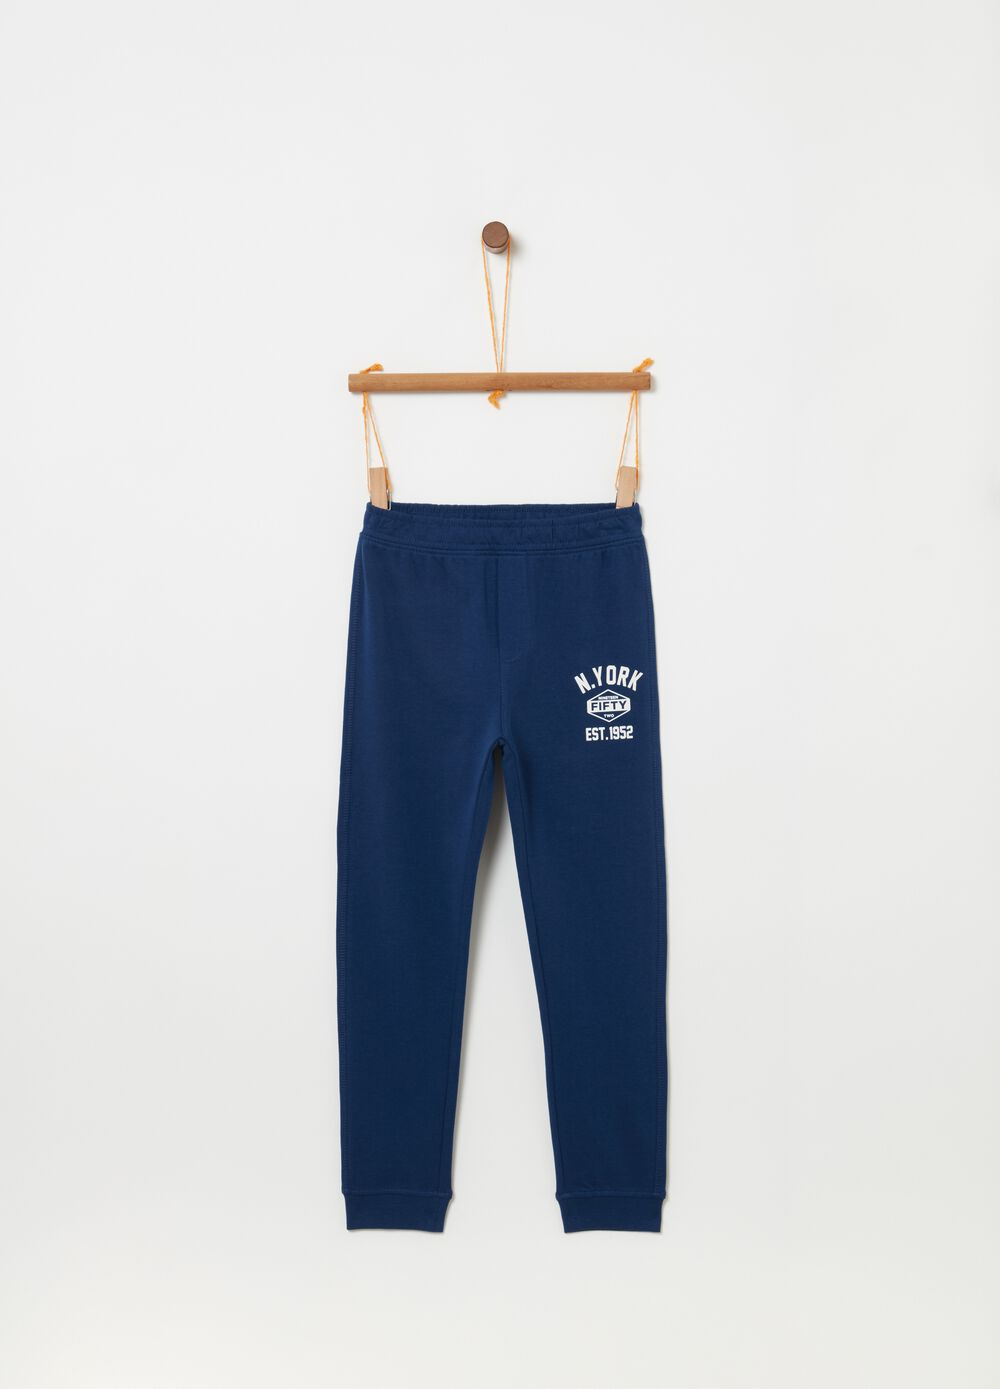 Trousers with pocket and New York print